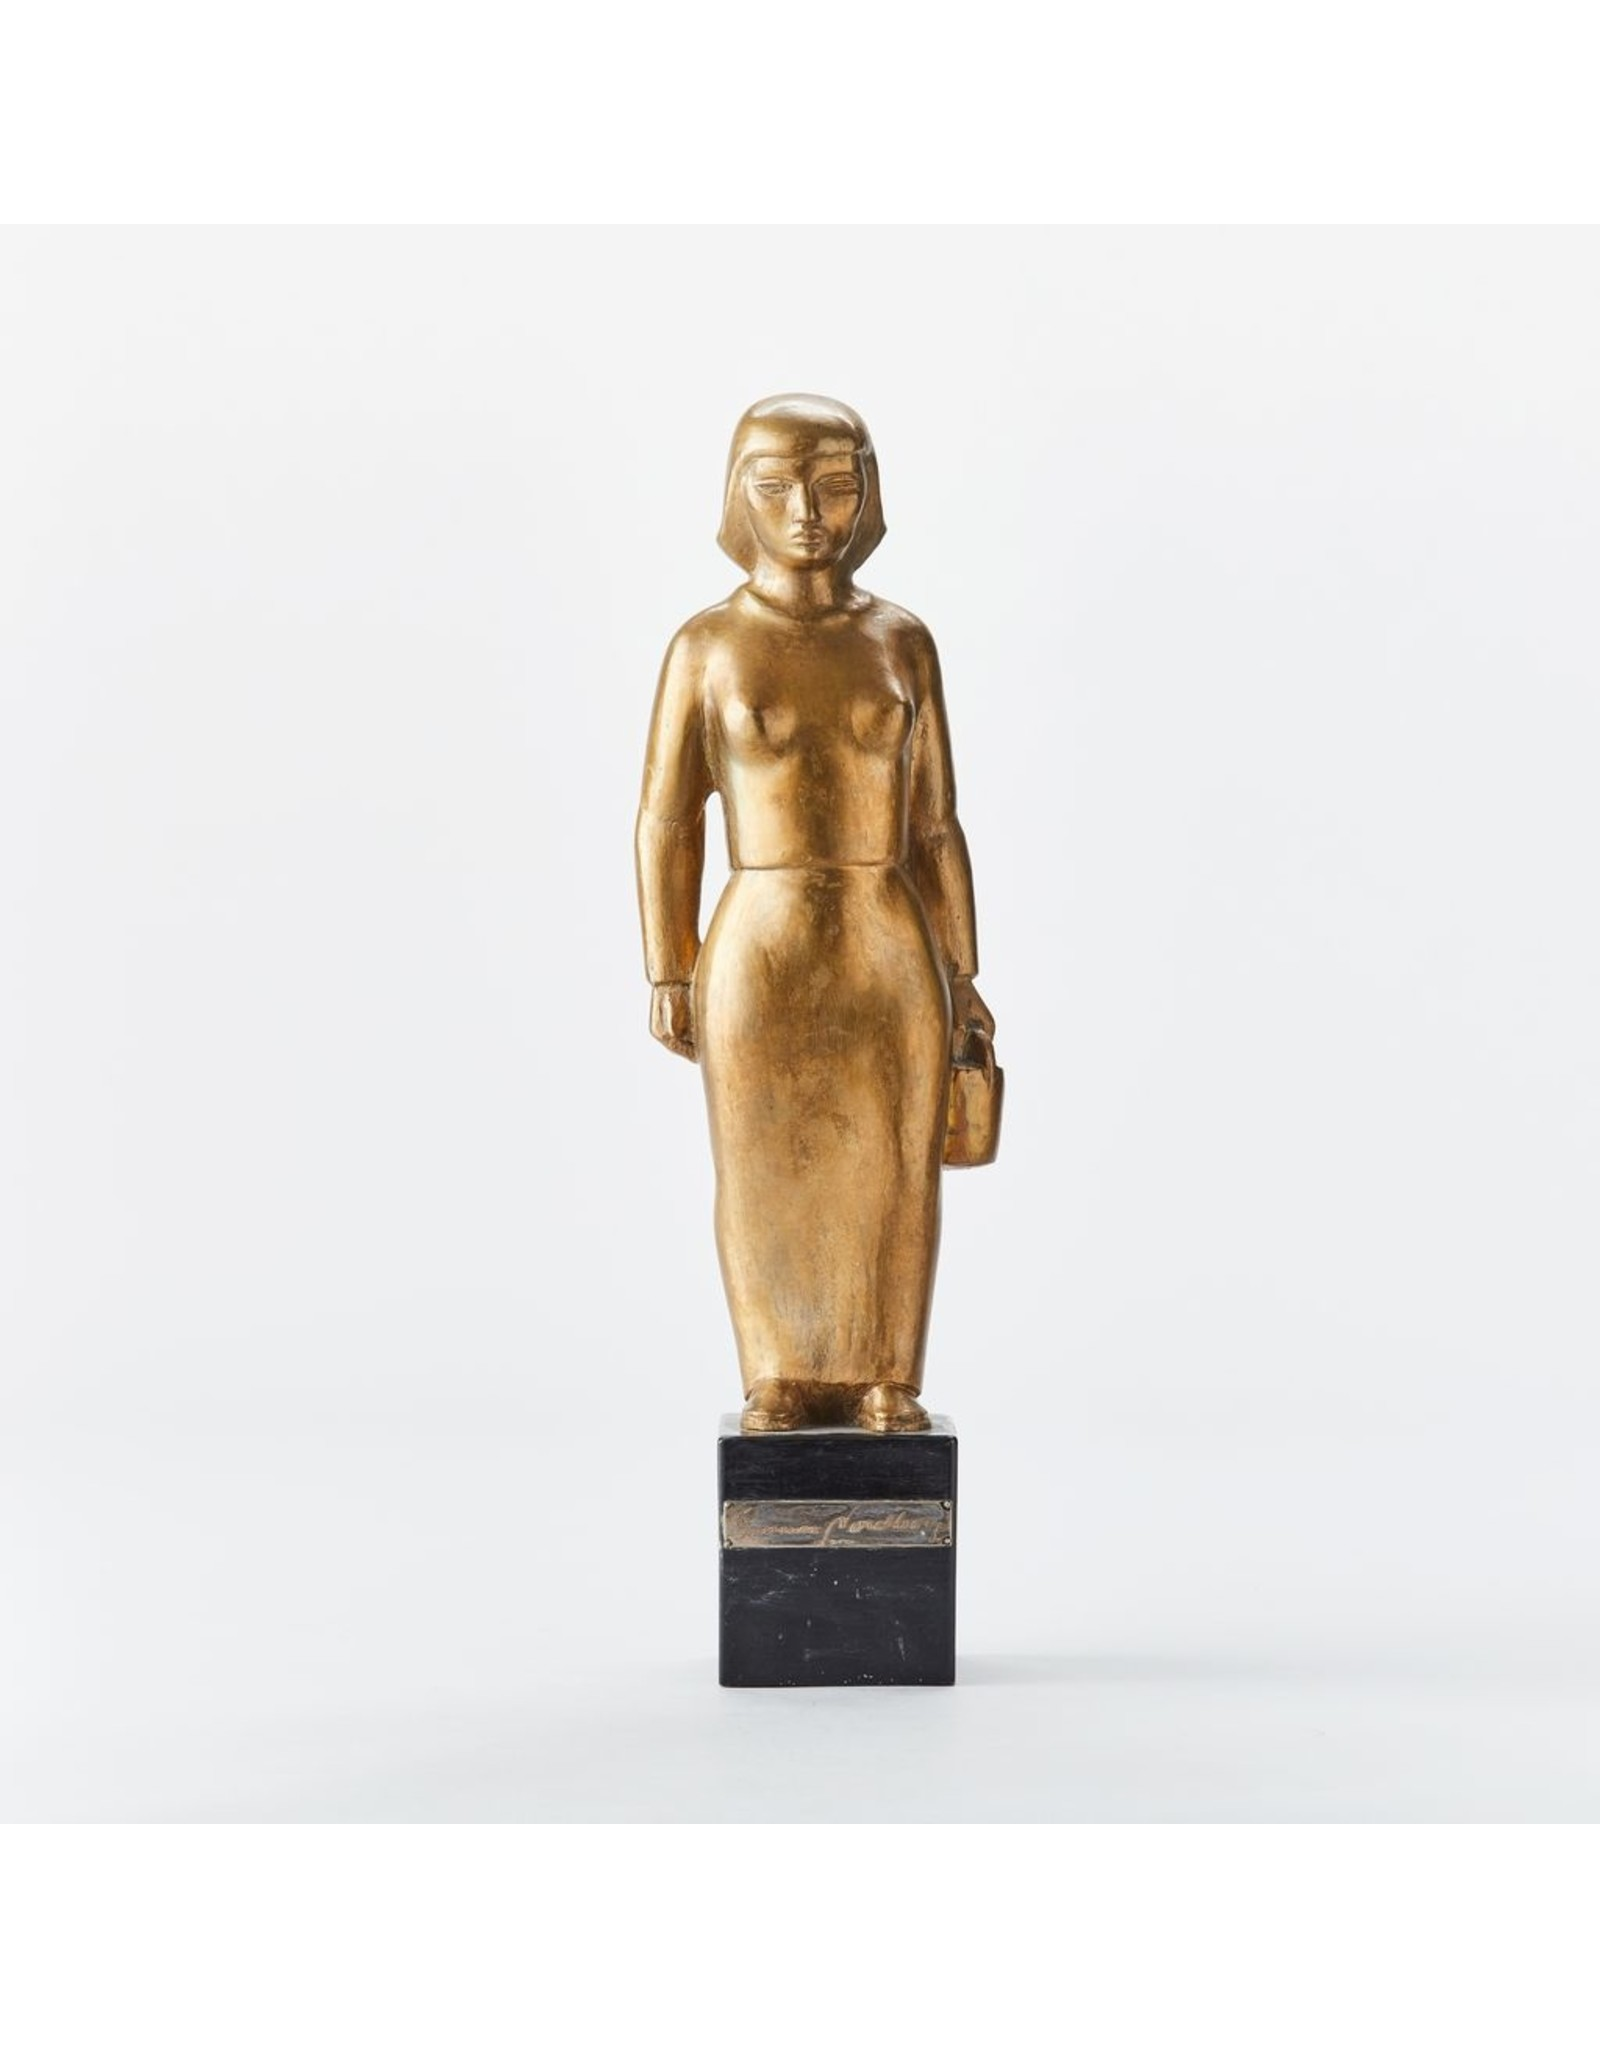 """MANKS ANTIQUES 1920s GOLD PLATED BRONZE OF """"WOMAN WITH PAIL"""" ON WOODEN STAND"""